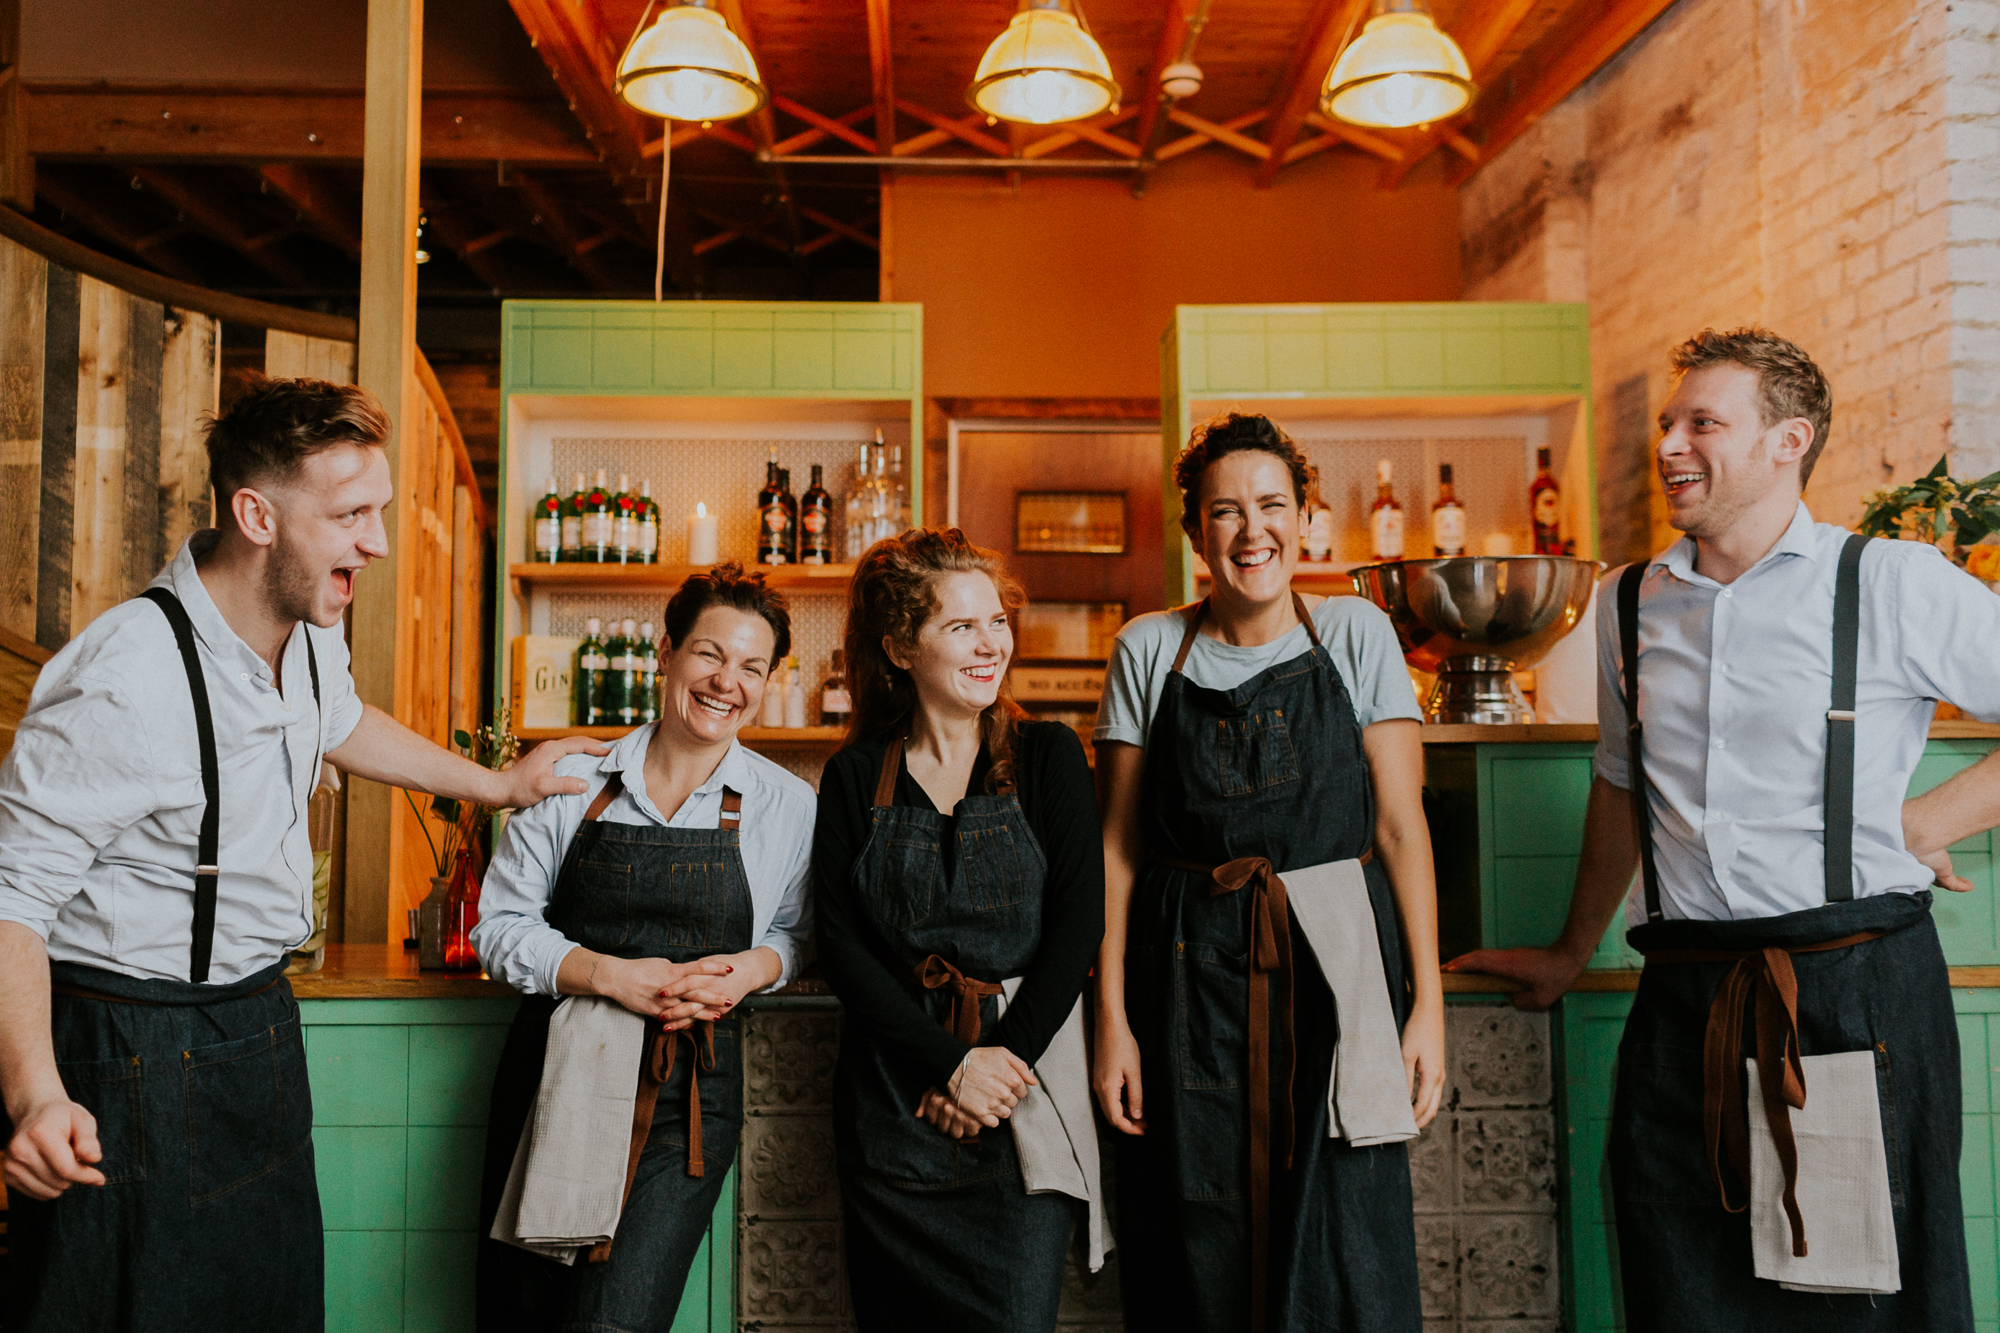 Quirky Venue, Non-traditional wedding planner, Bar operation, London Wedding coordination, Bespoke weddings, Brixton East 1871, informal, Dry hire venue, Stylish, Food, drink Production, Warehouse